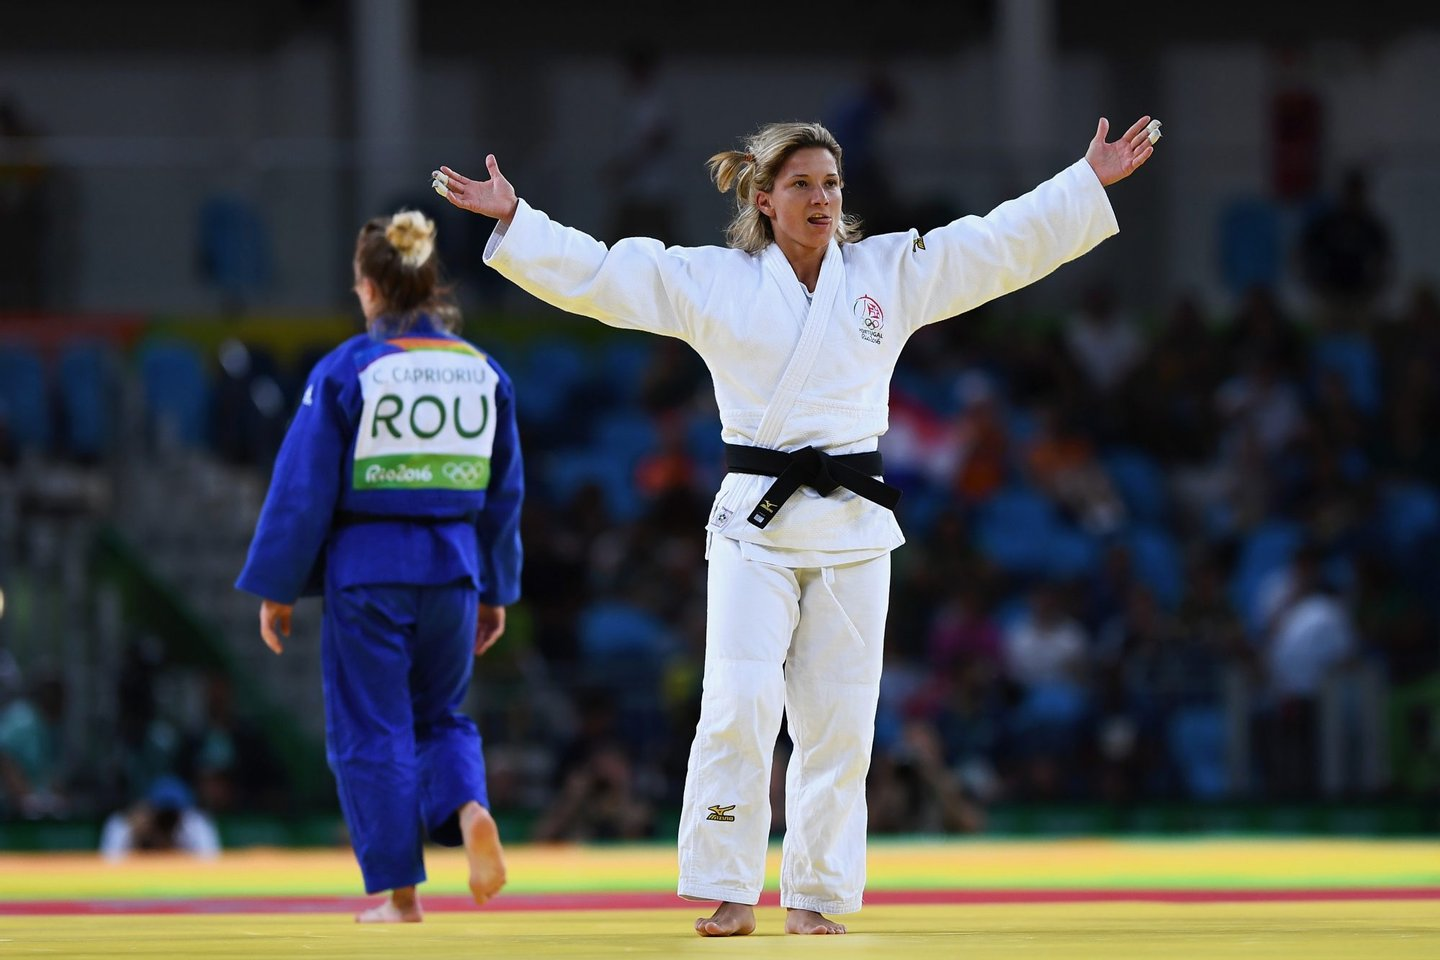 RIO DE JANEIRO, BRAZIL - AUGUST 08: Telma Monteiro of Portugal (white) celebrates after defeating Corina Caprioriu of Romania in the Women's -57 kg Contest for Bronze Medal A on Day 3 of the Rio 2016 Olympic Games at Carioca Arena 2 on August 8, 2016 in Rio de Janeiro, Brazil. (Photo by David Ramos/Getty Images)